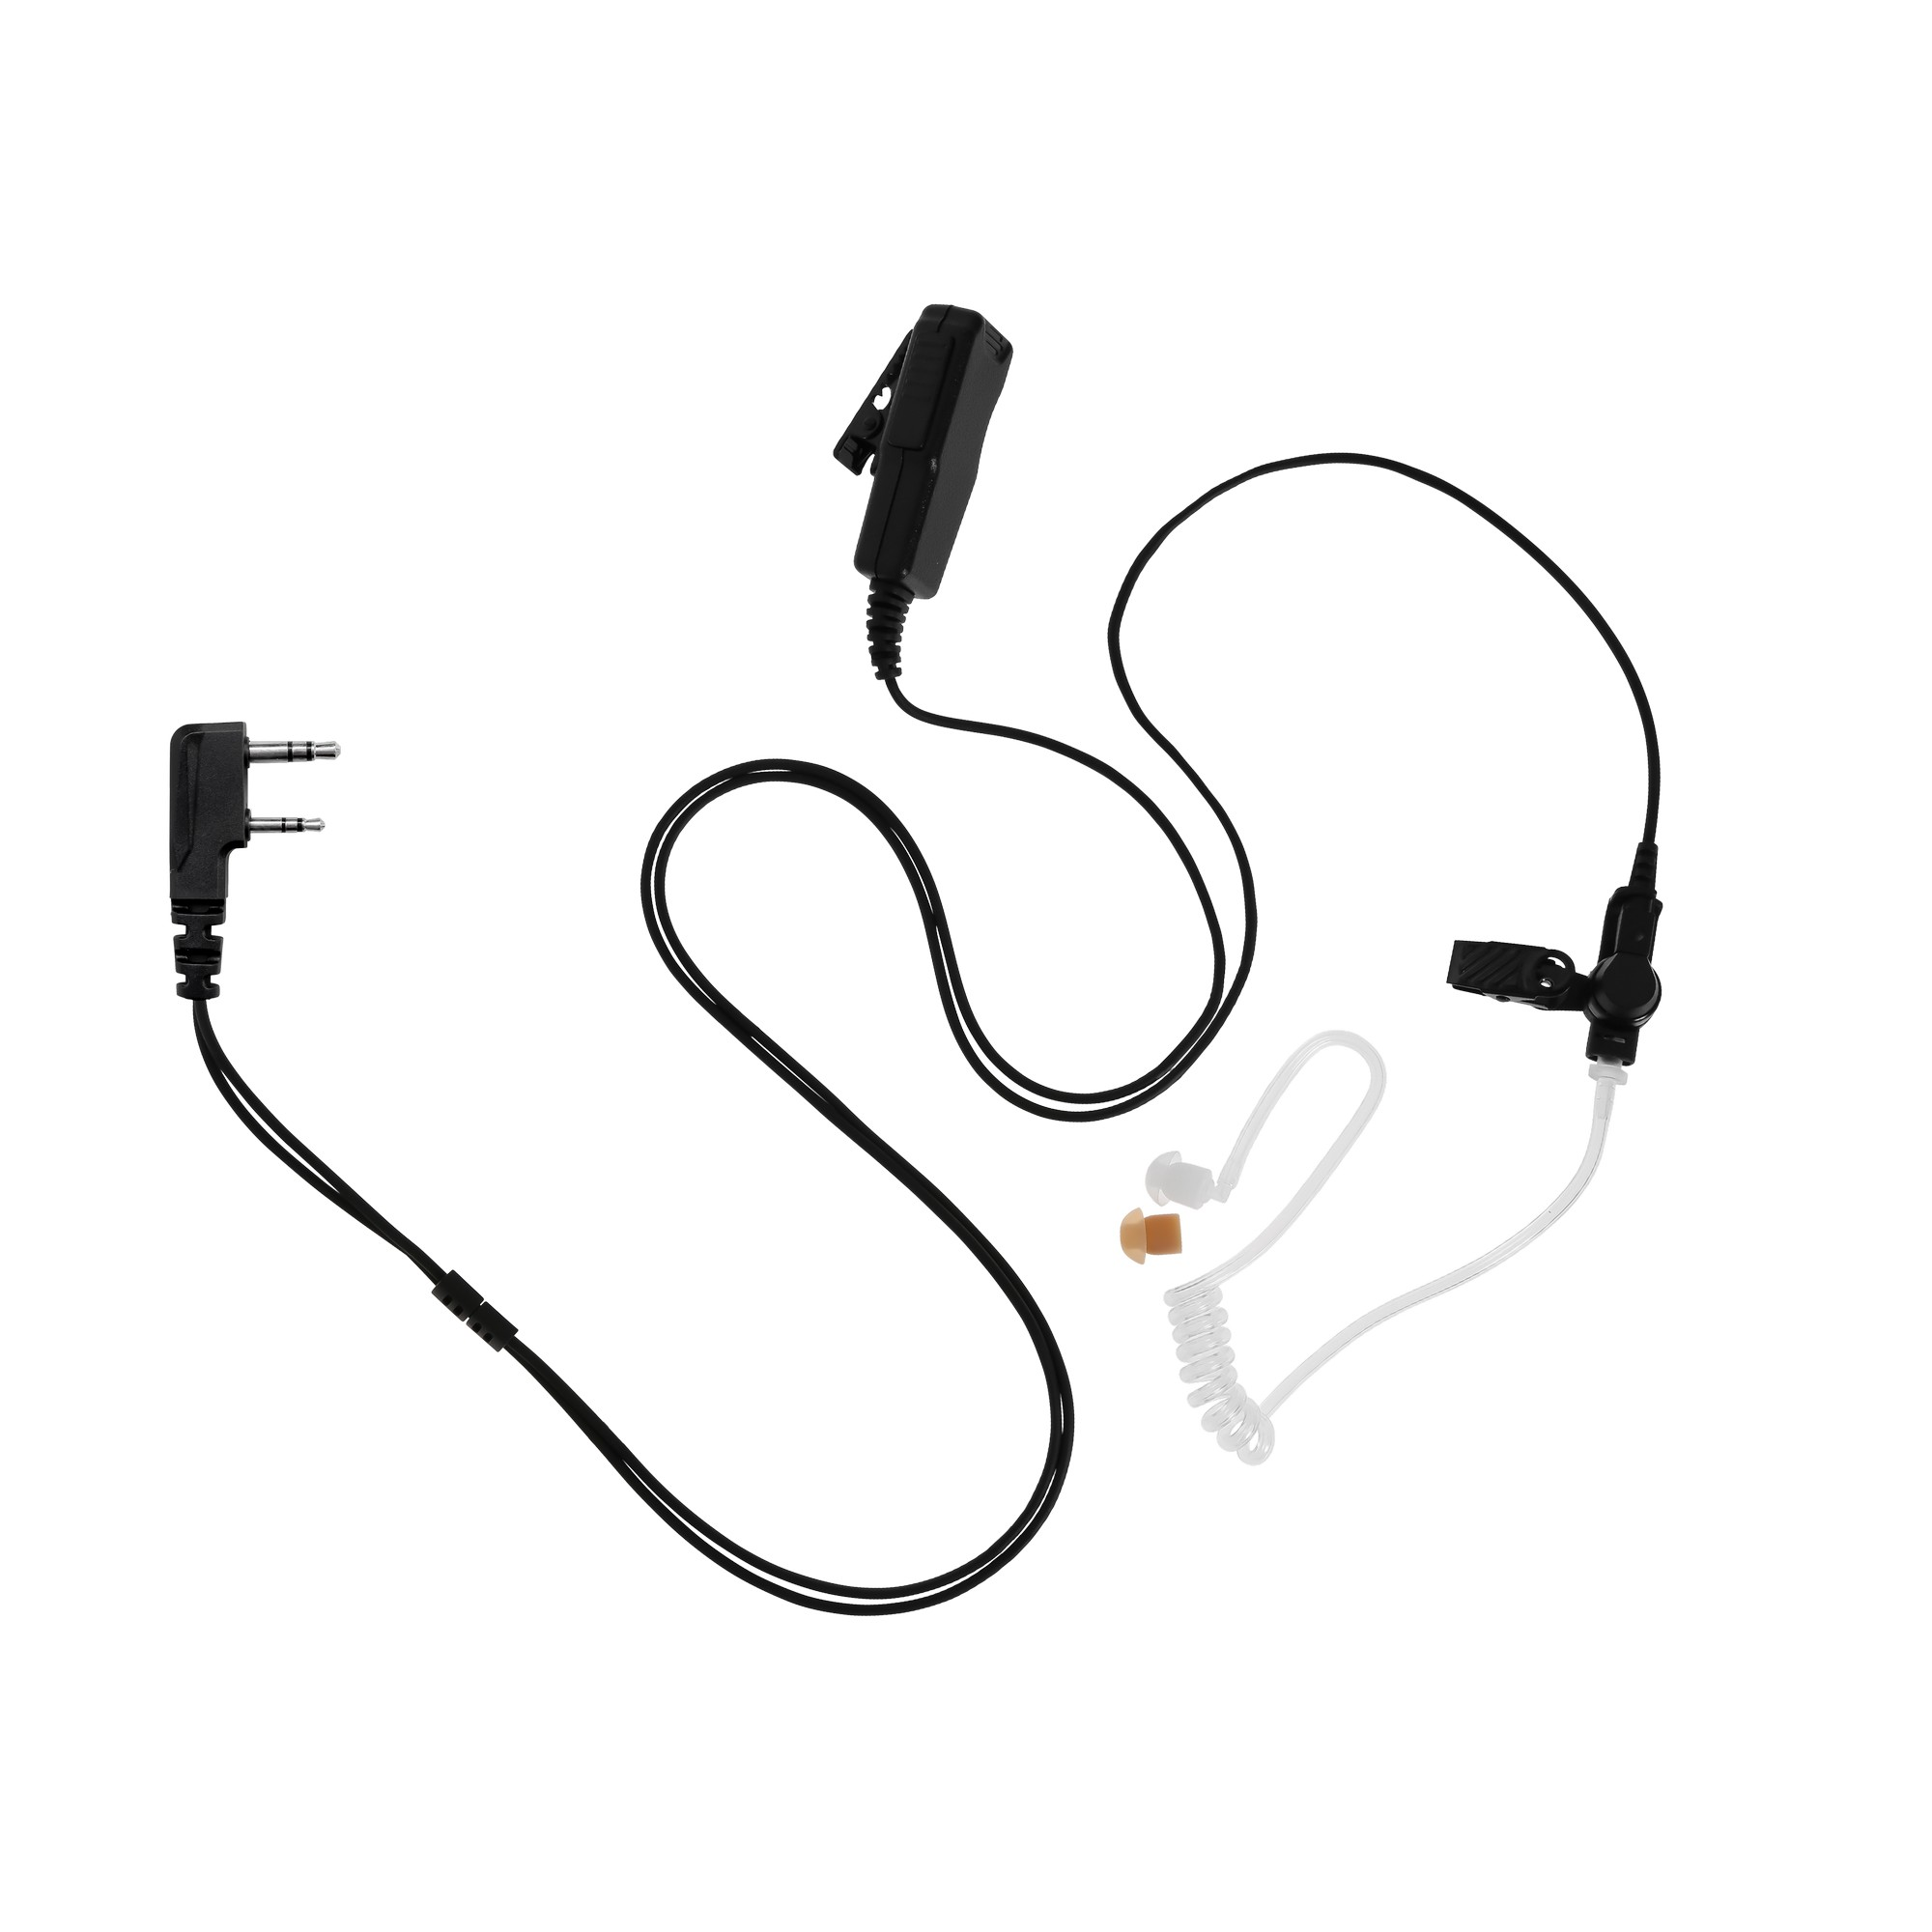 Maxtop ASK4032-K2C 2 Wire Clear Tube Earpiece